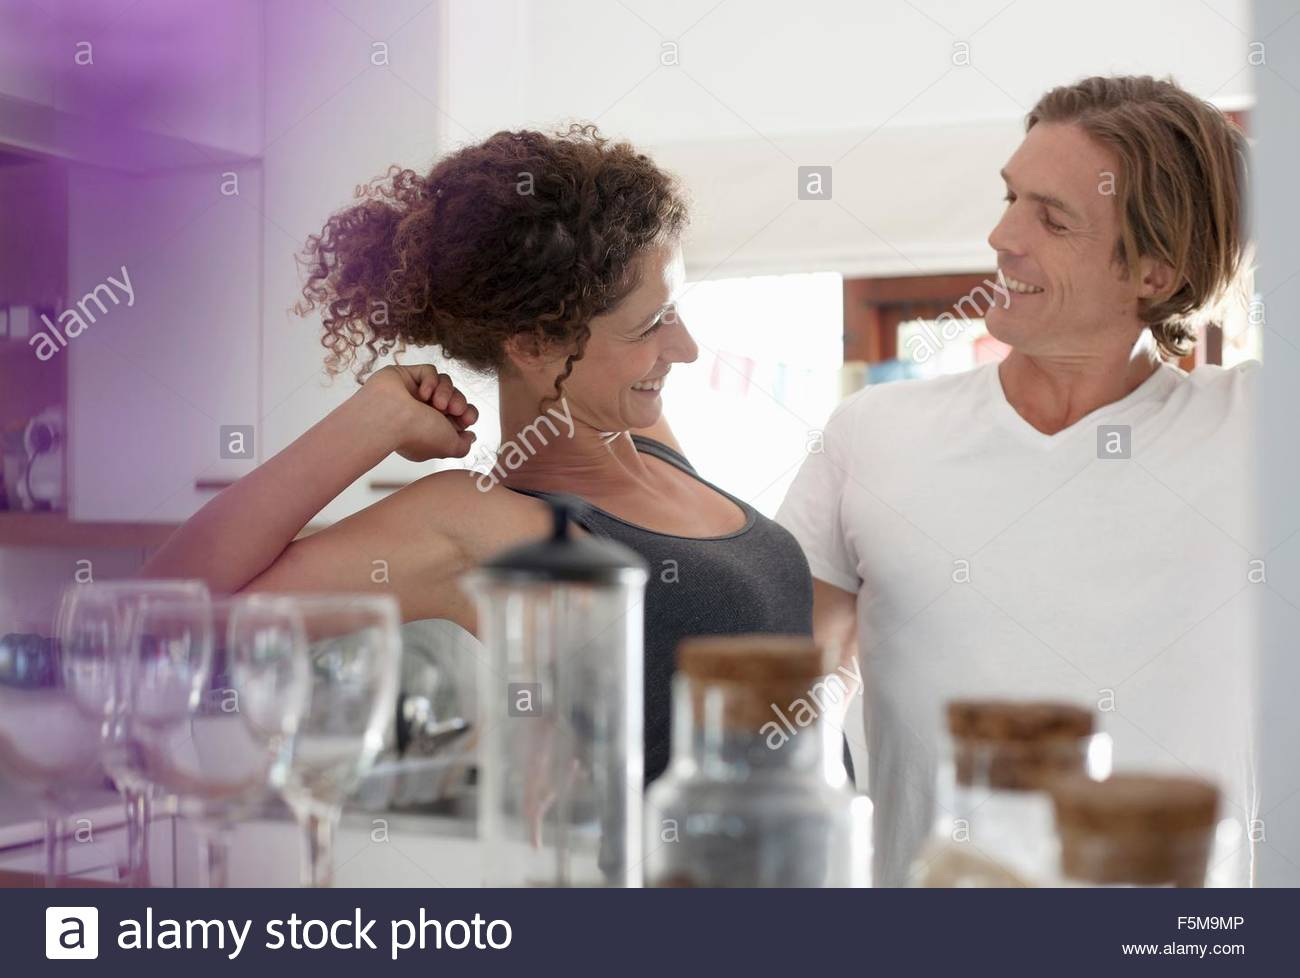 Couple in sleepwear, in kitchen, stretching, smiling - Stock Image